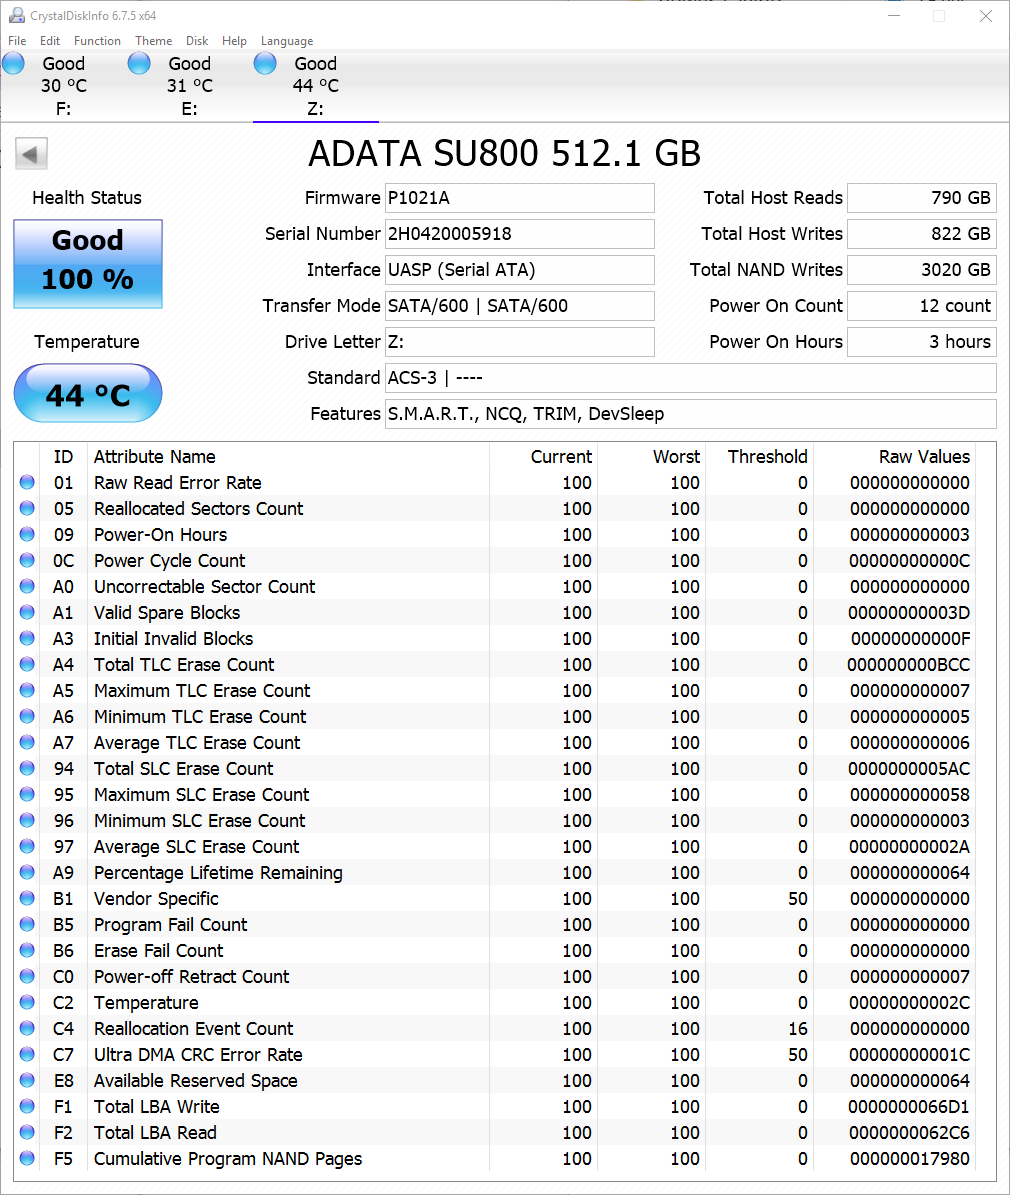 ADATA SD700 512GB External SSD Capsule Review